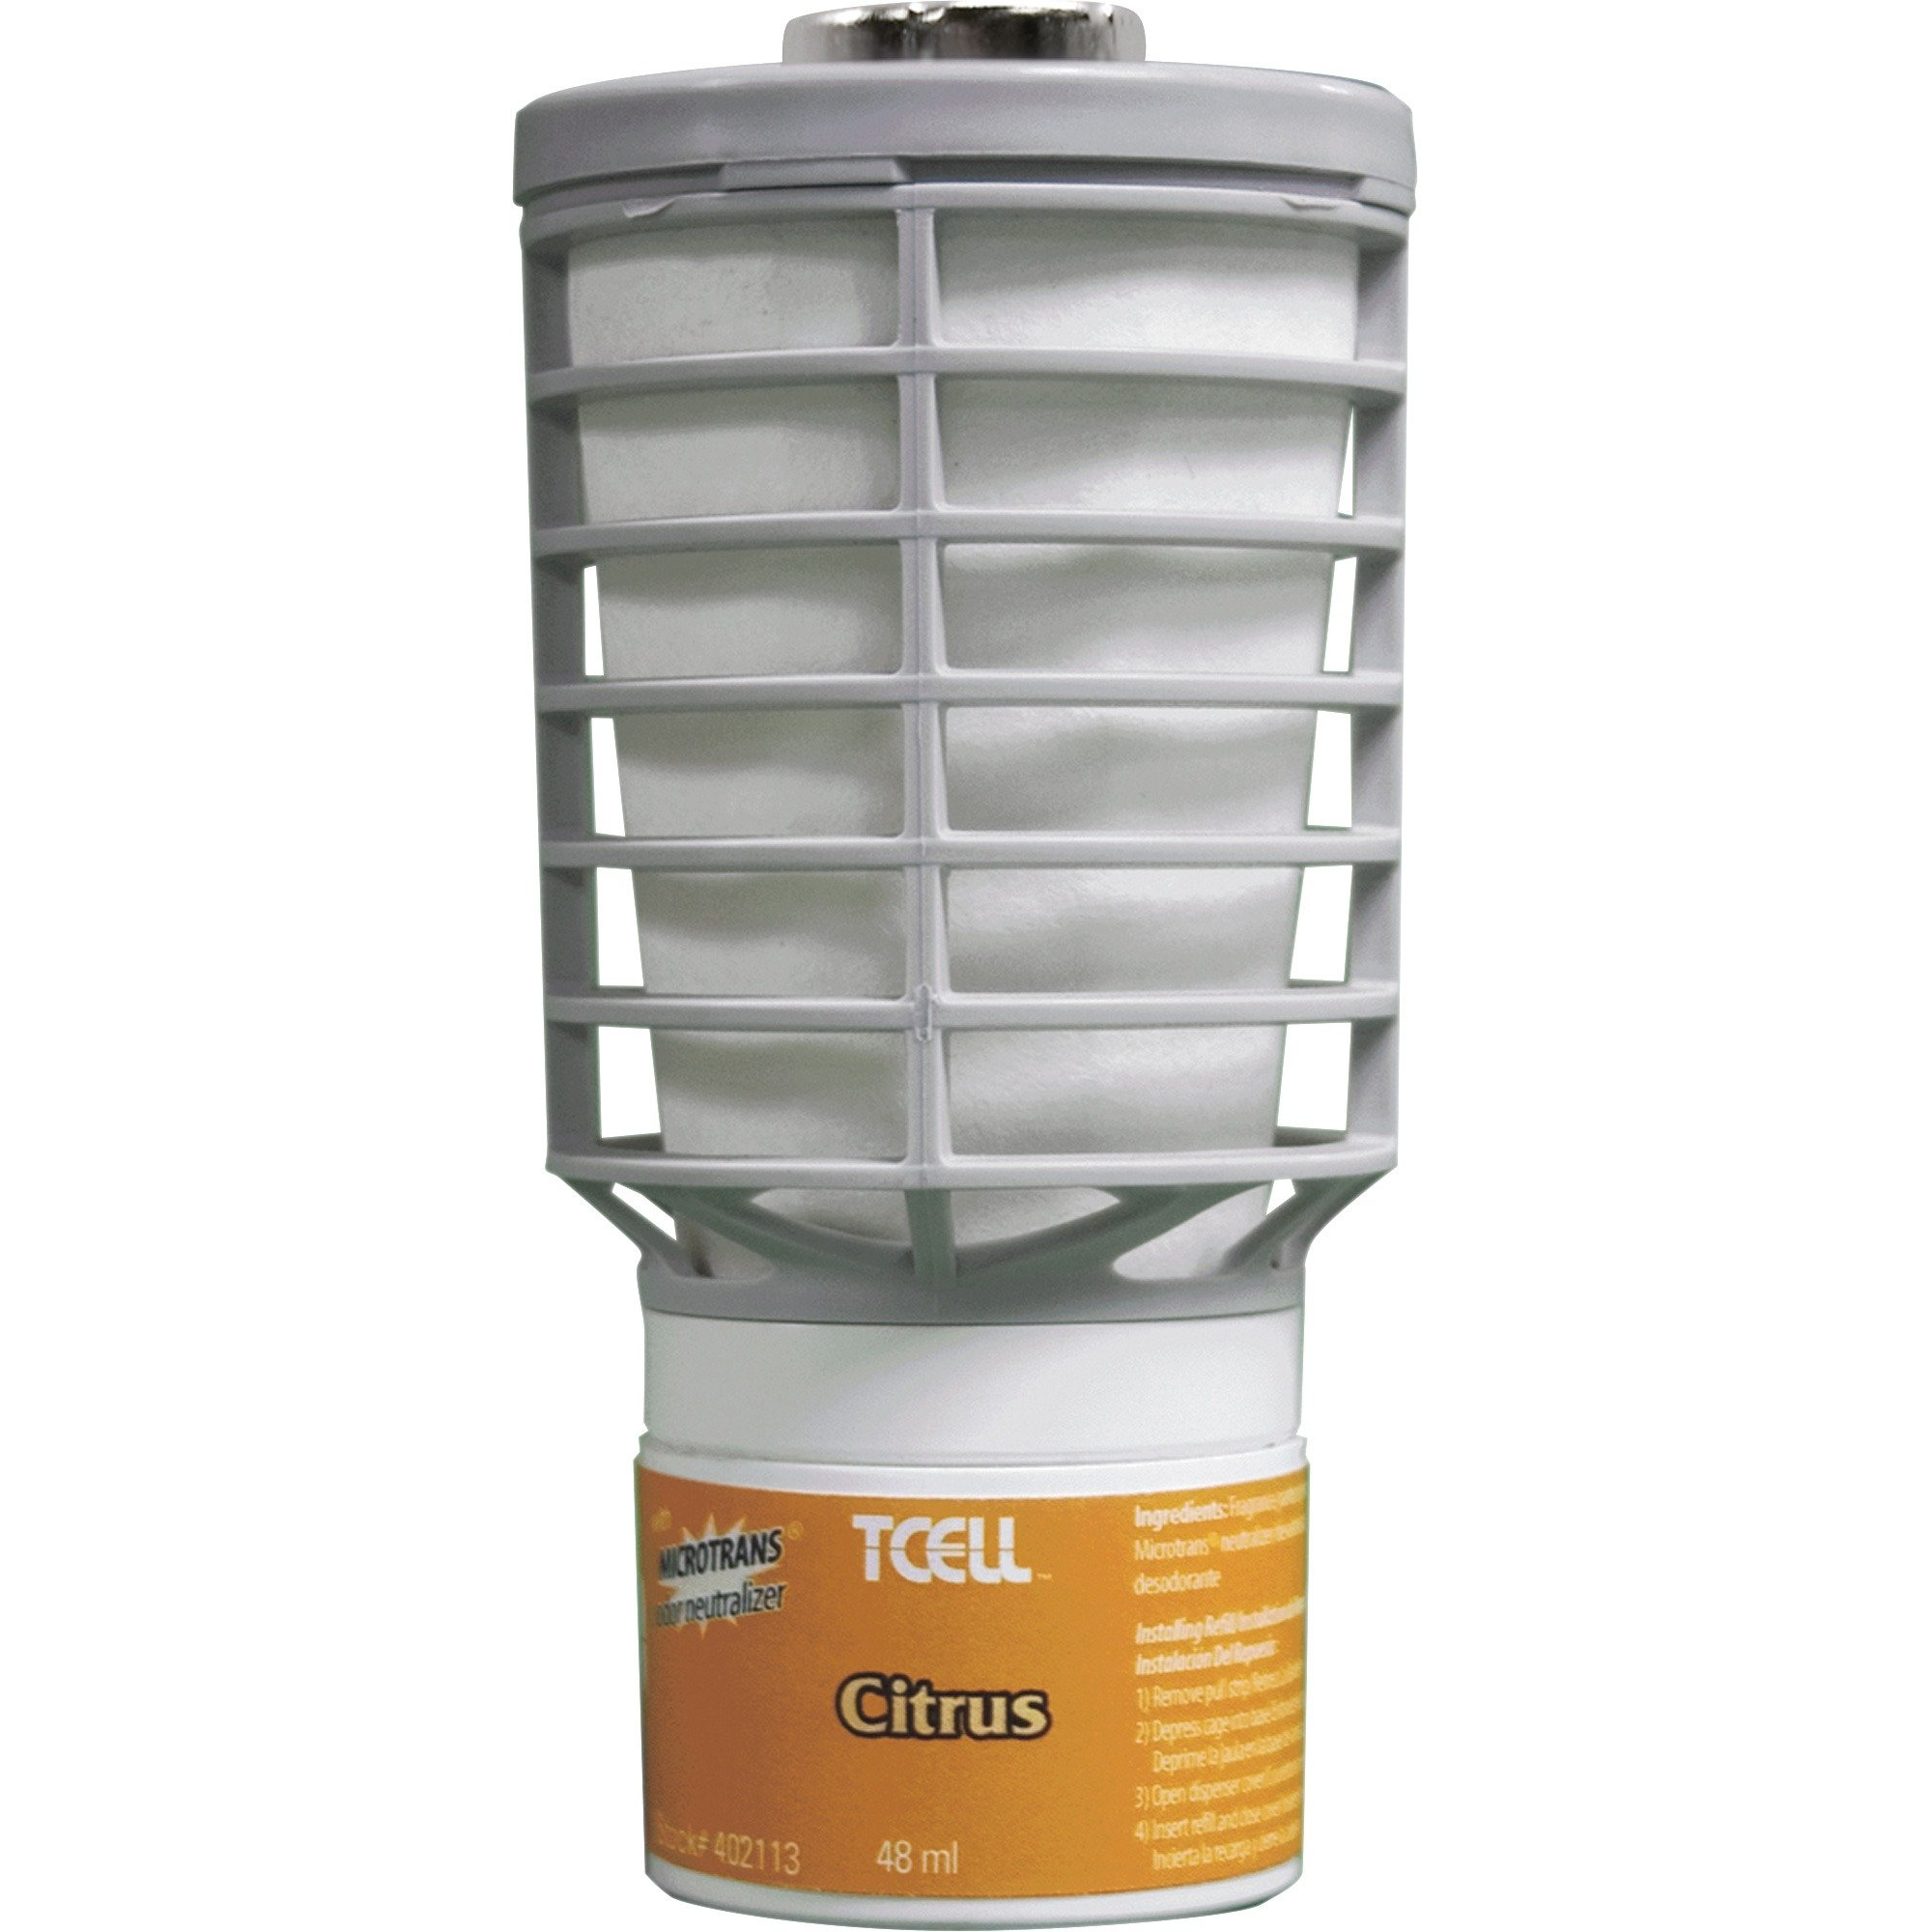 Rubbermaid Air Freshener TCell Refill - Citrus - 6/case